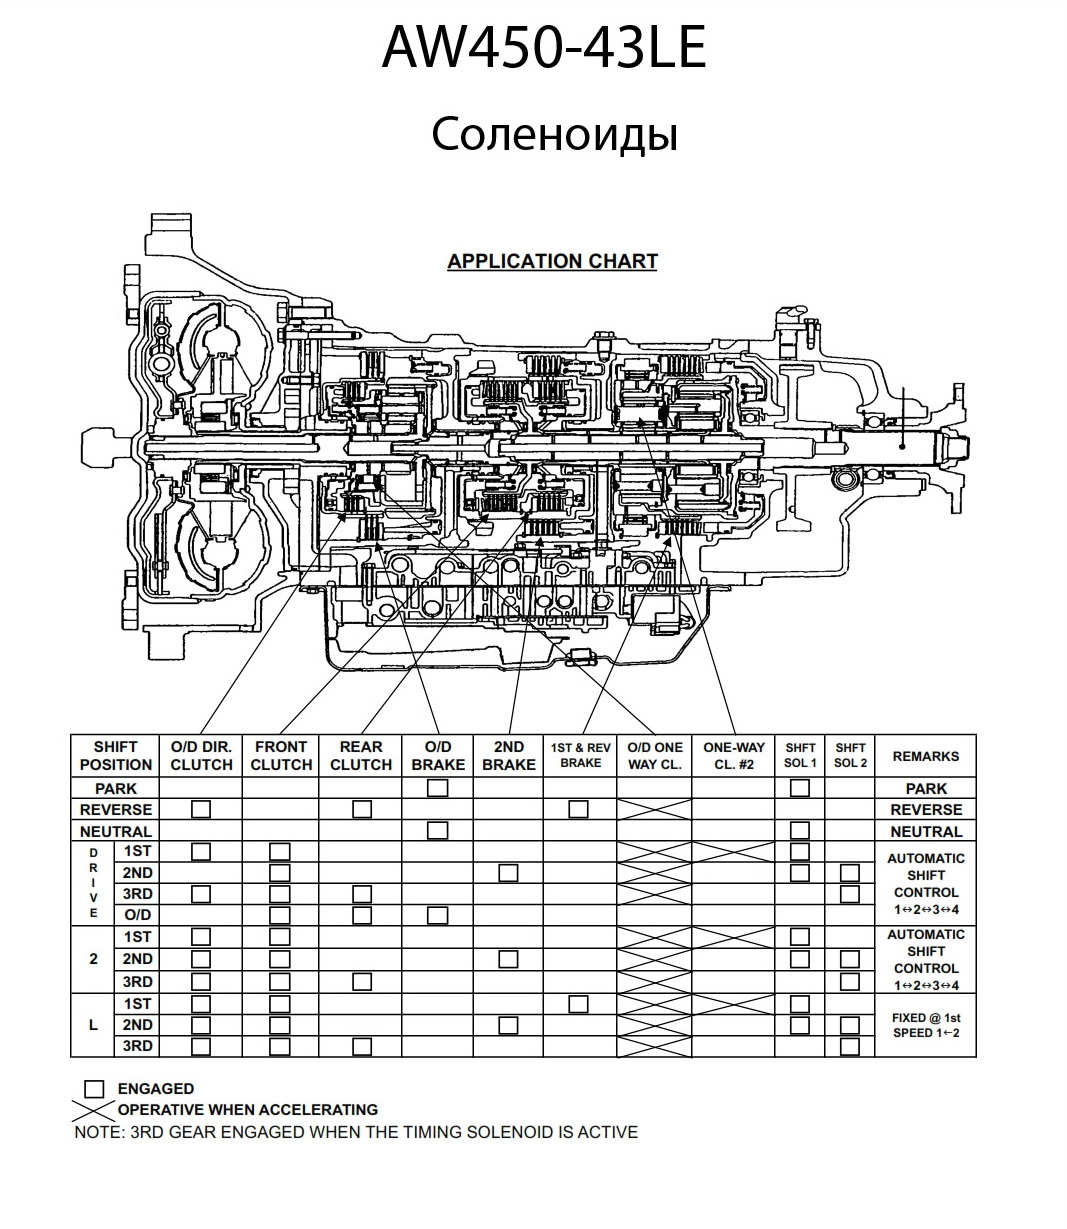 Transmission Repair Manuals Aw 450 43le